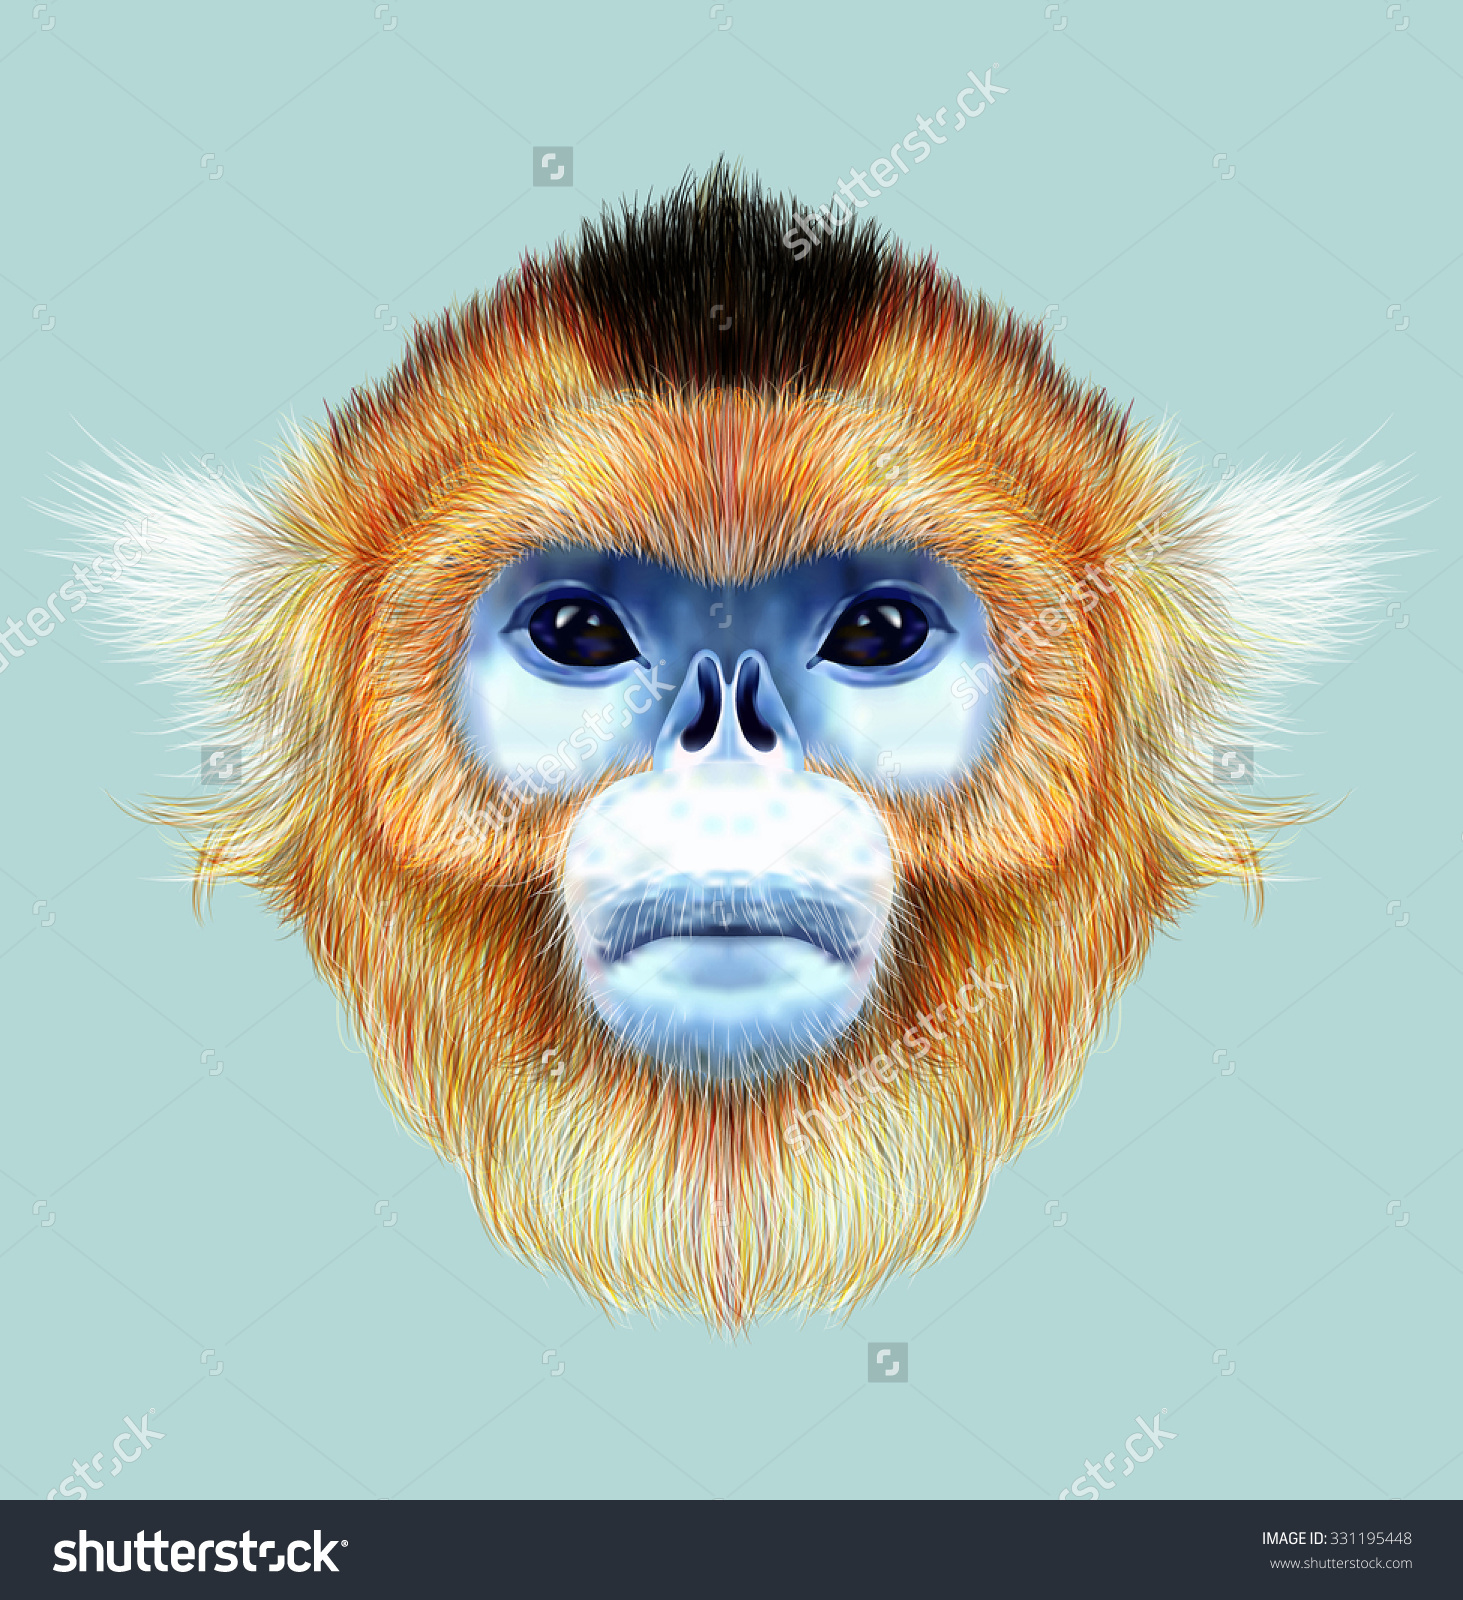 Golden Snub-nosed Monkey clipart #2, Download drawings